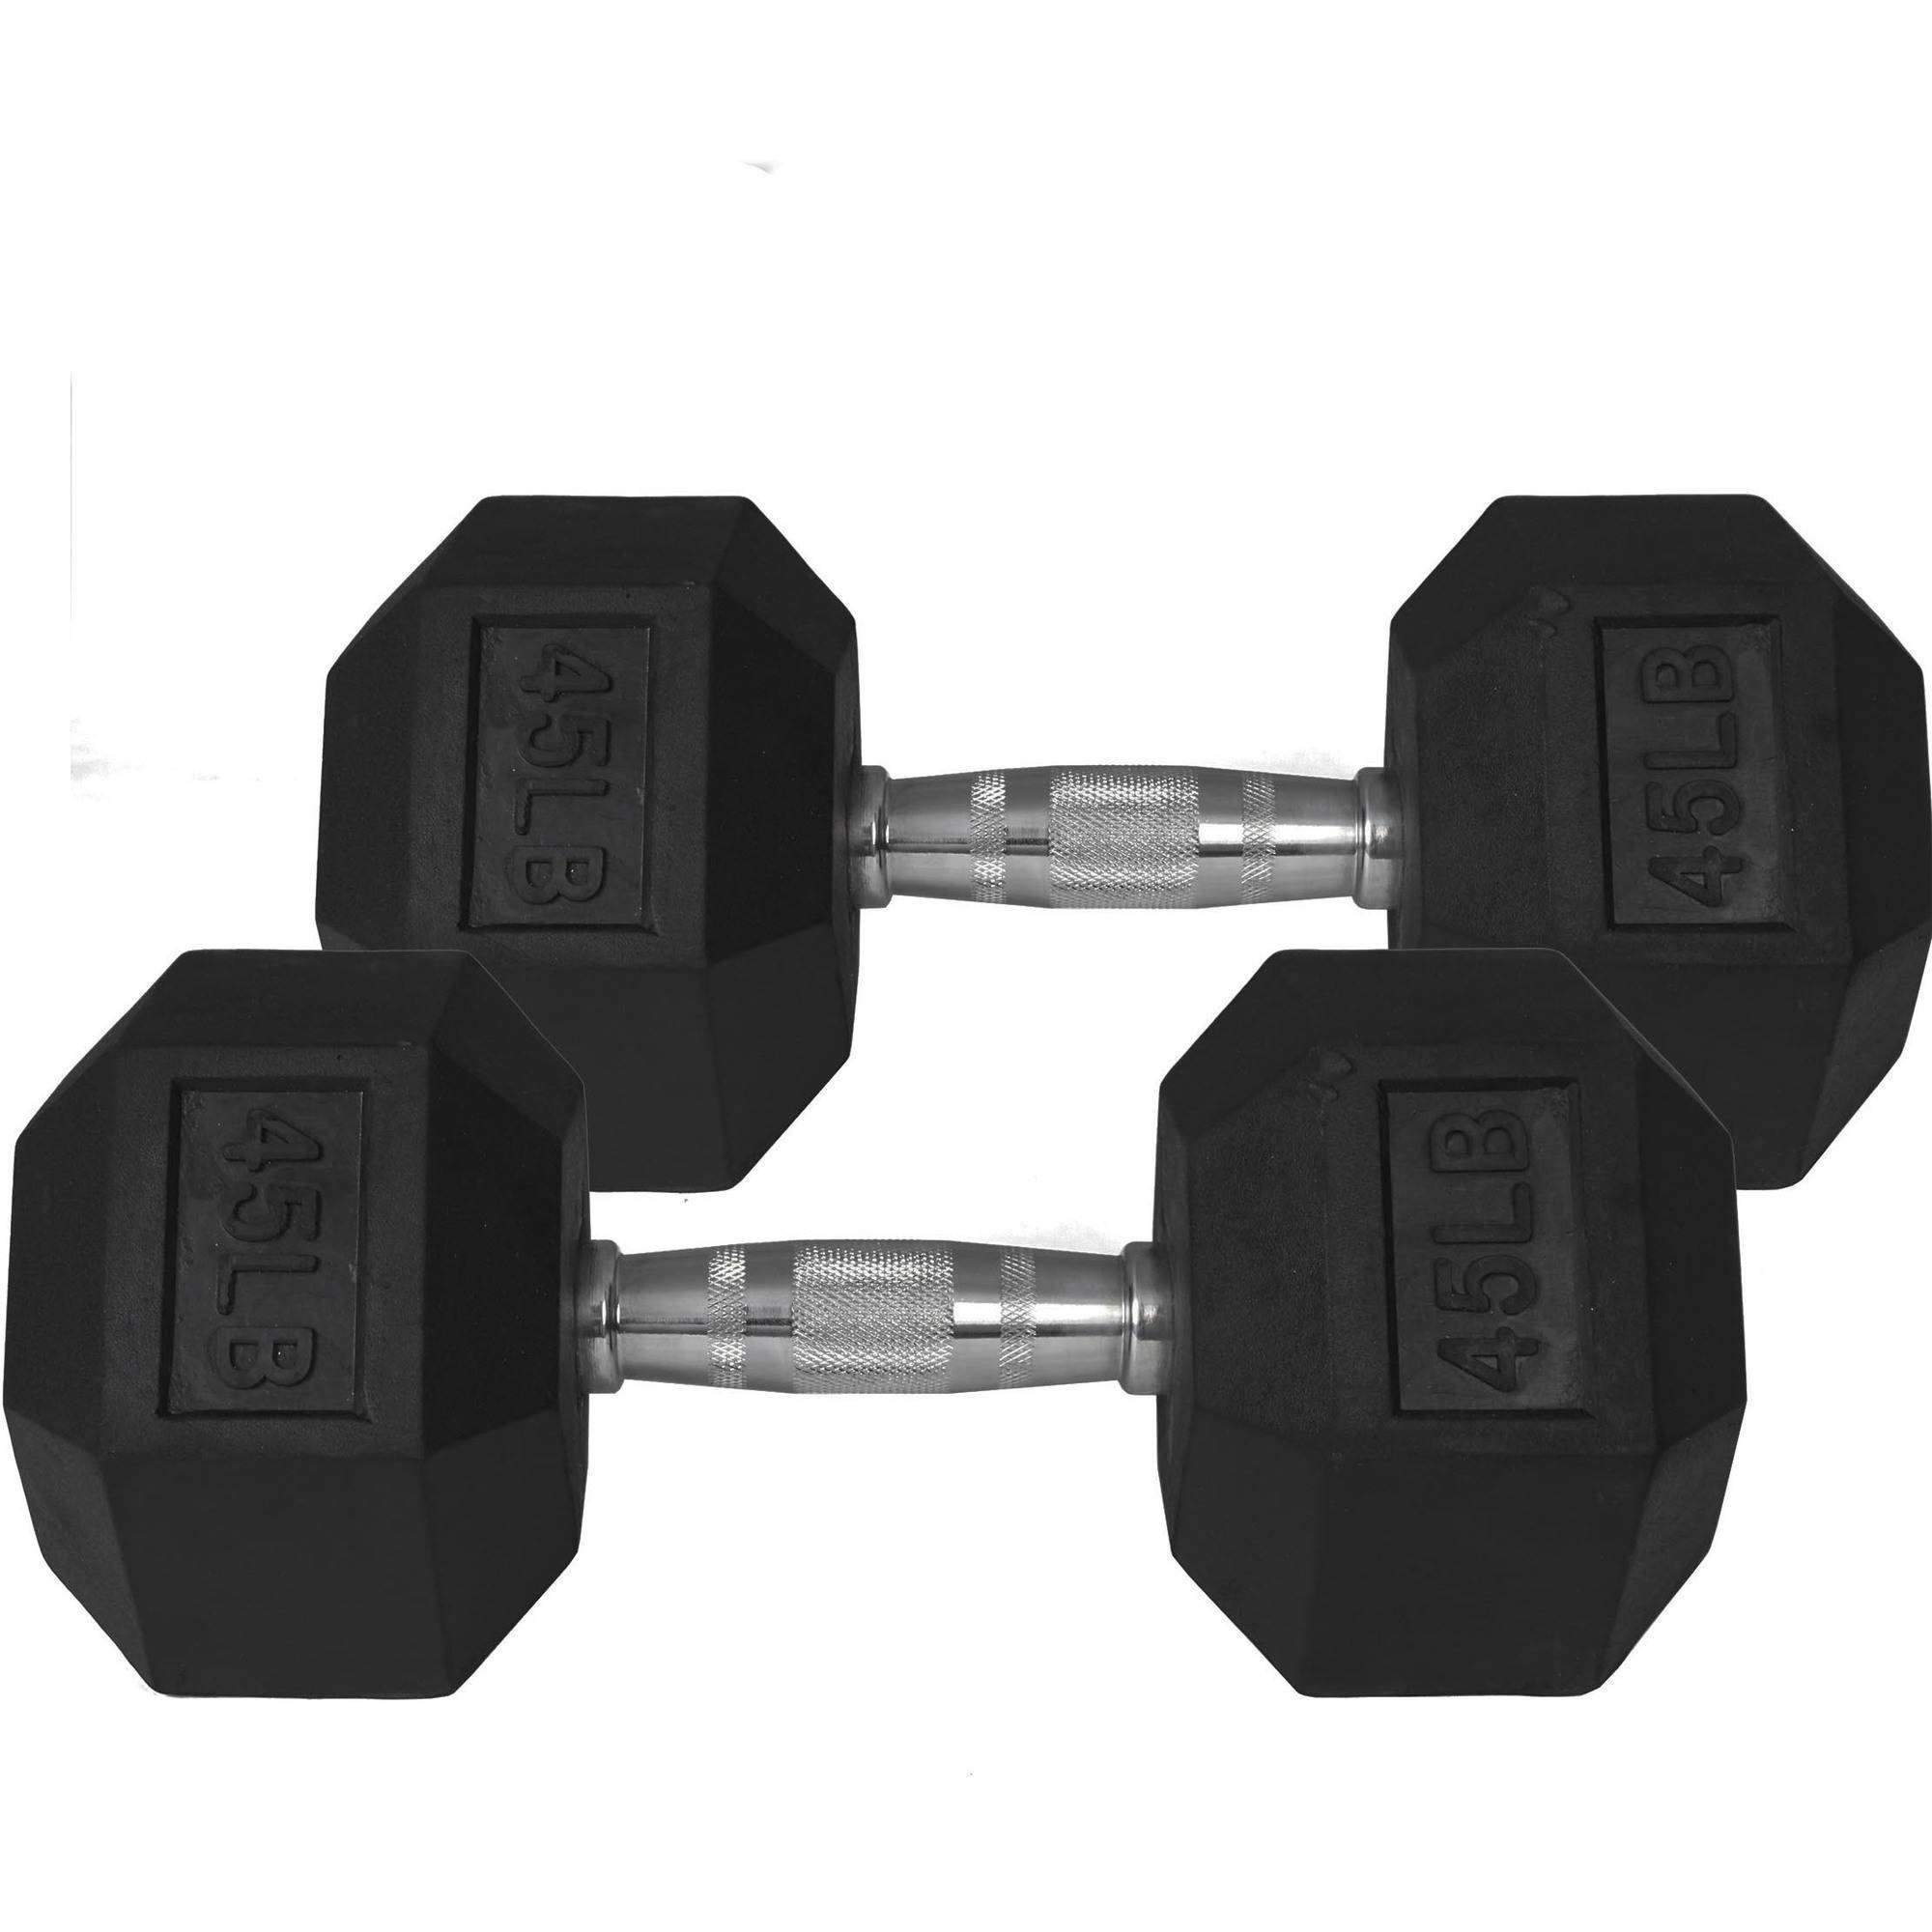 Pair of 45 lb Black Rubber Coated Hex Dumbbells Weight Training Set, 90 lb by Titan Fitness